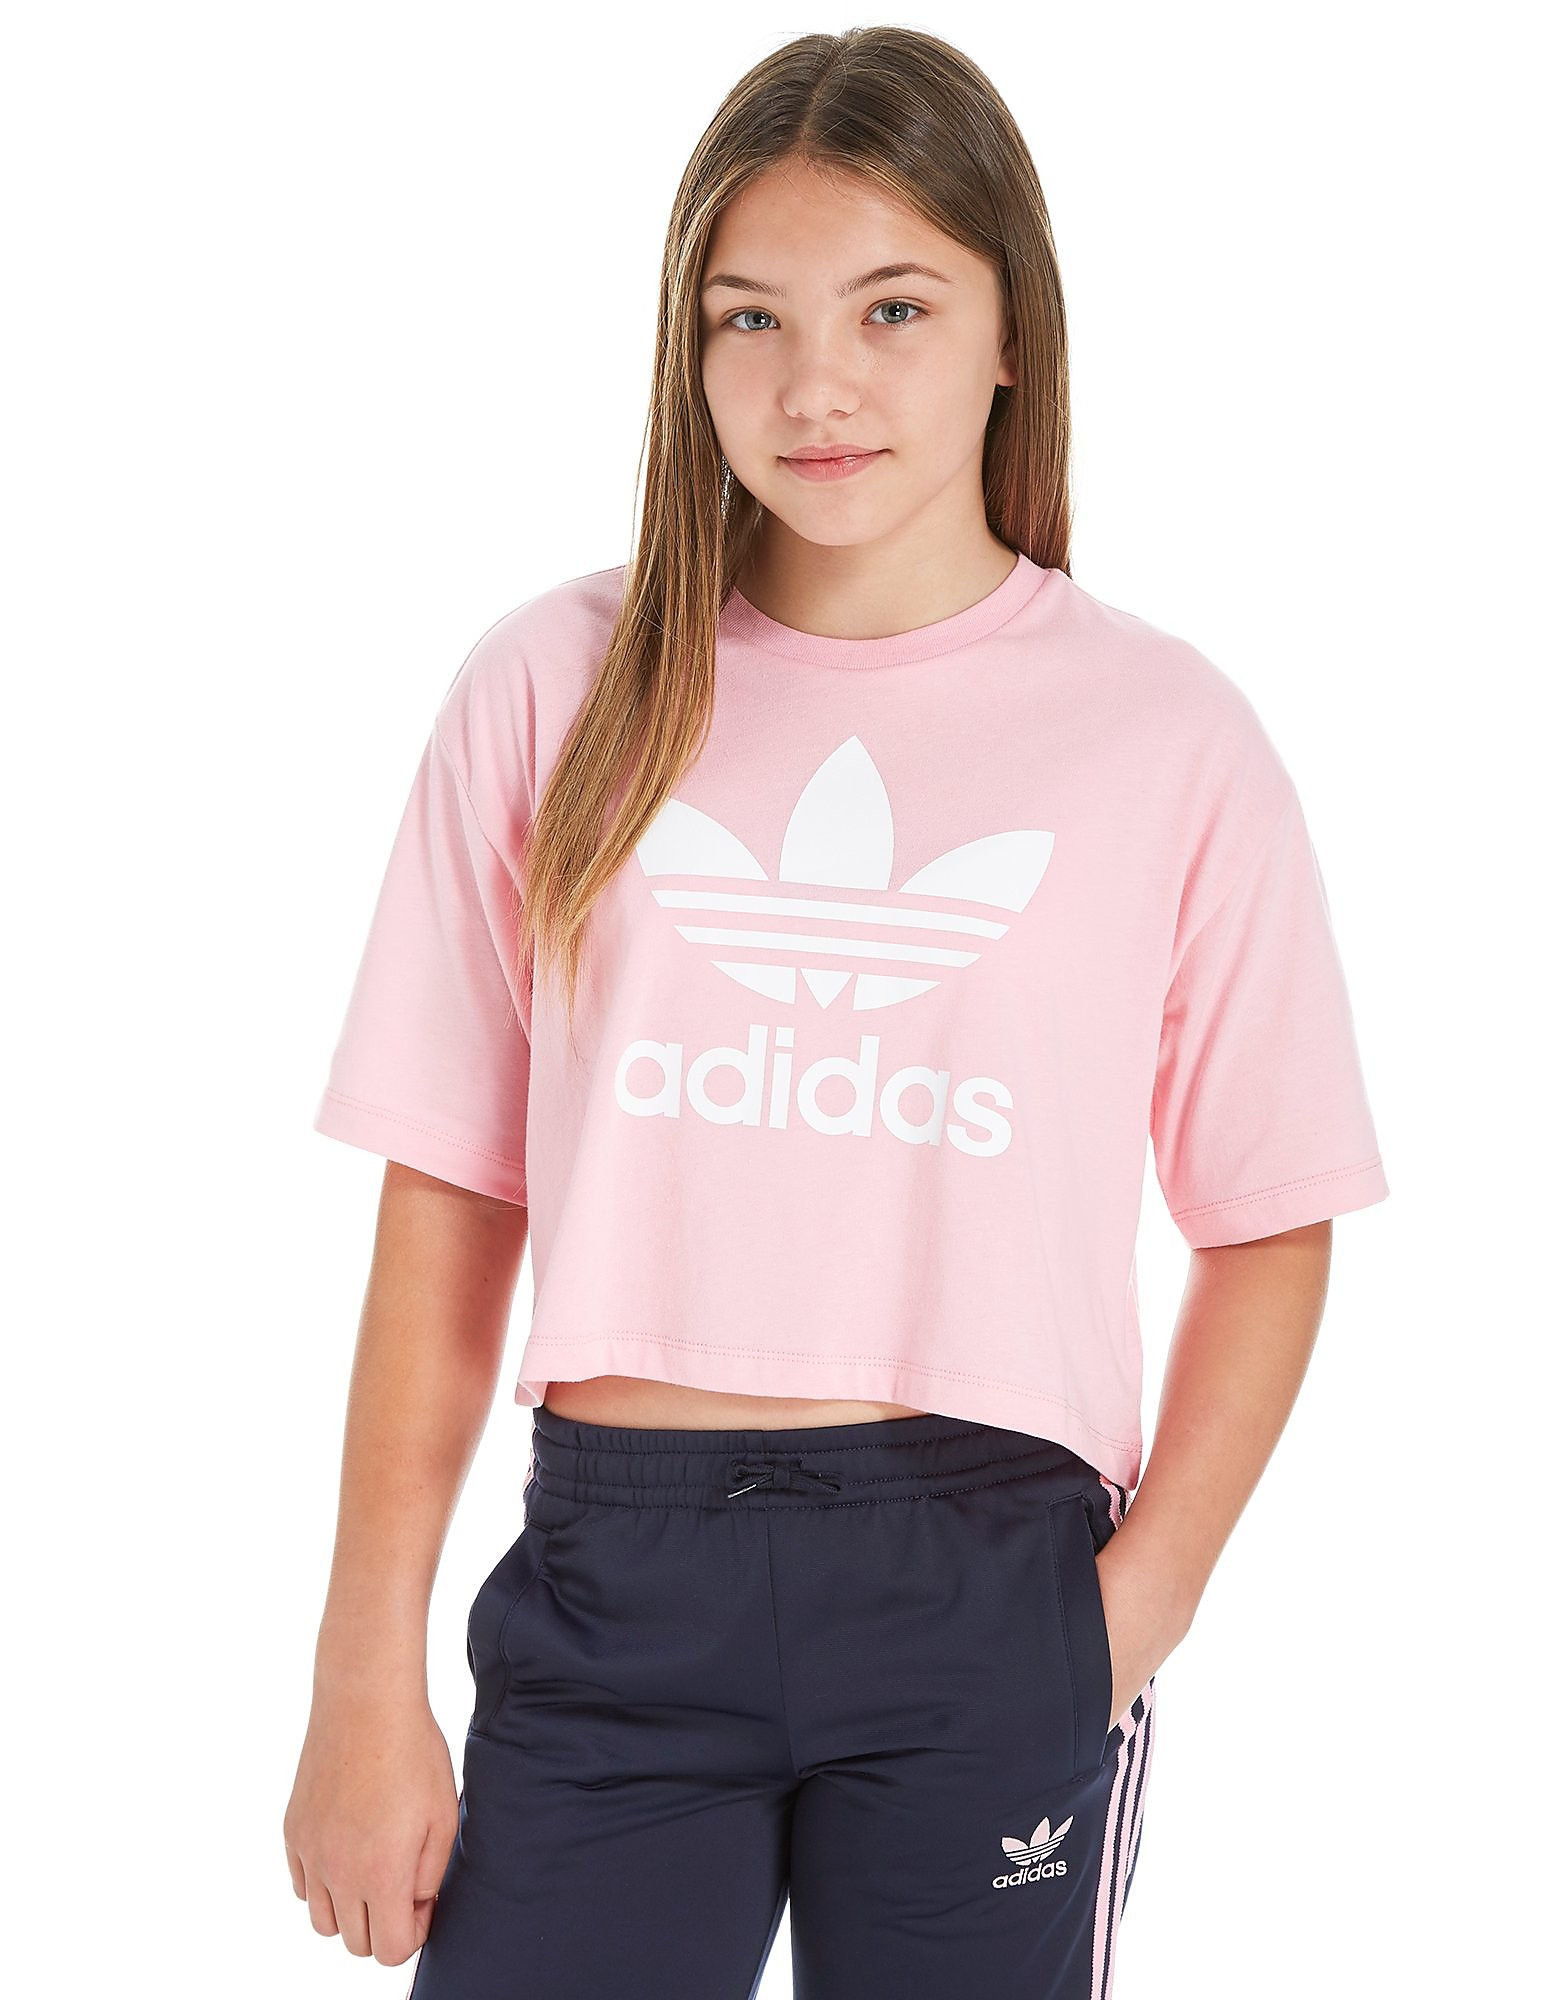 adidas Originals camiseta Trefoil Crop júnior